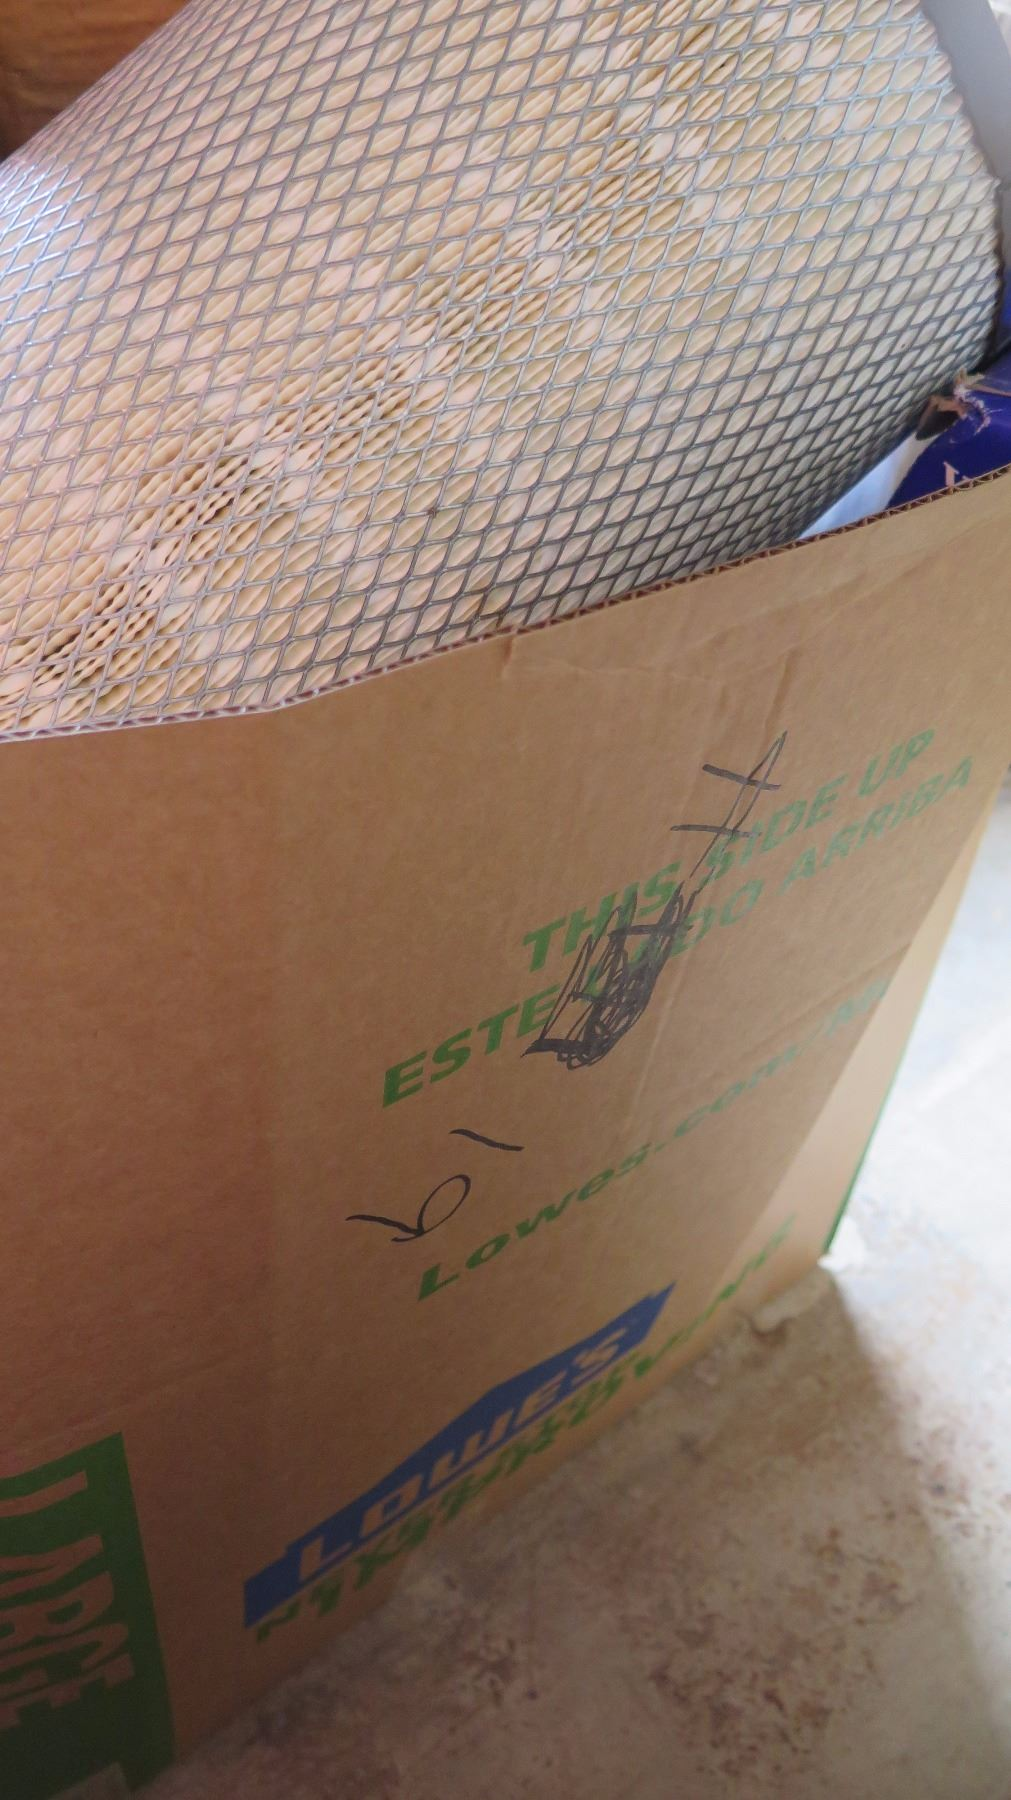 New Volvo Parts Filter Element Air Filters Fuel Wiper Image 2